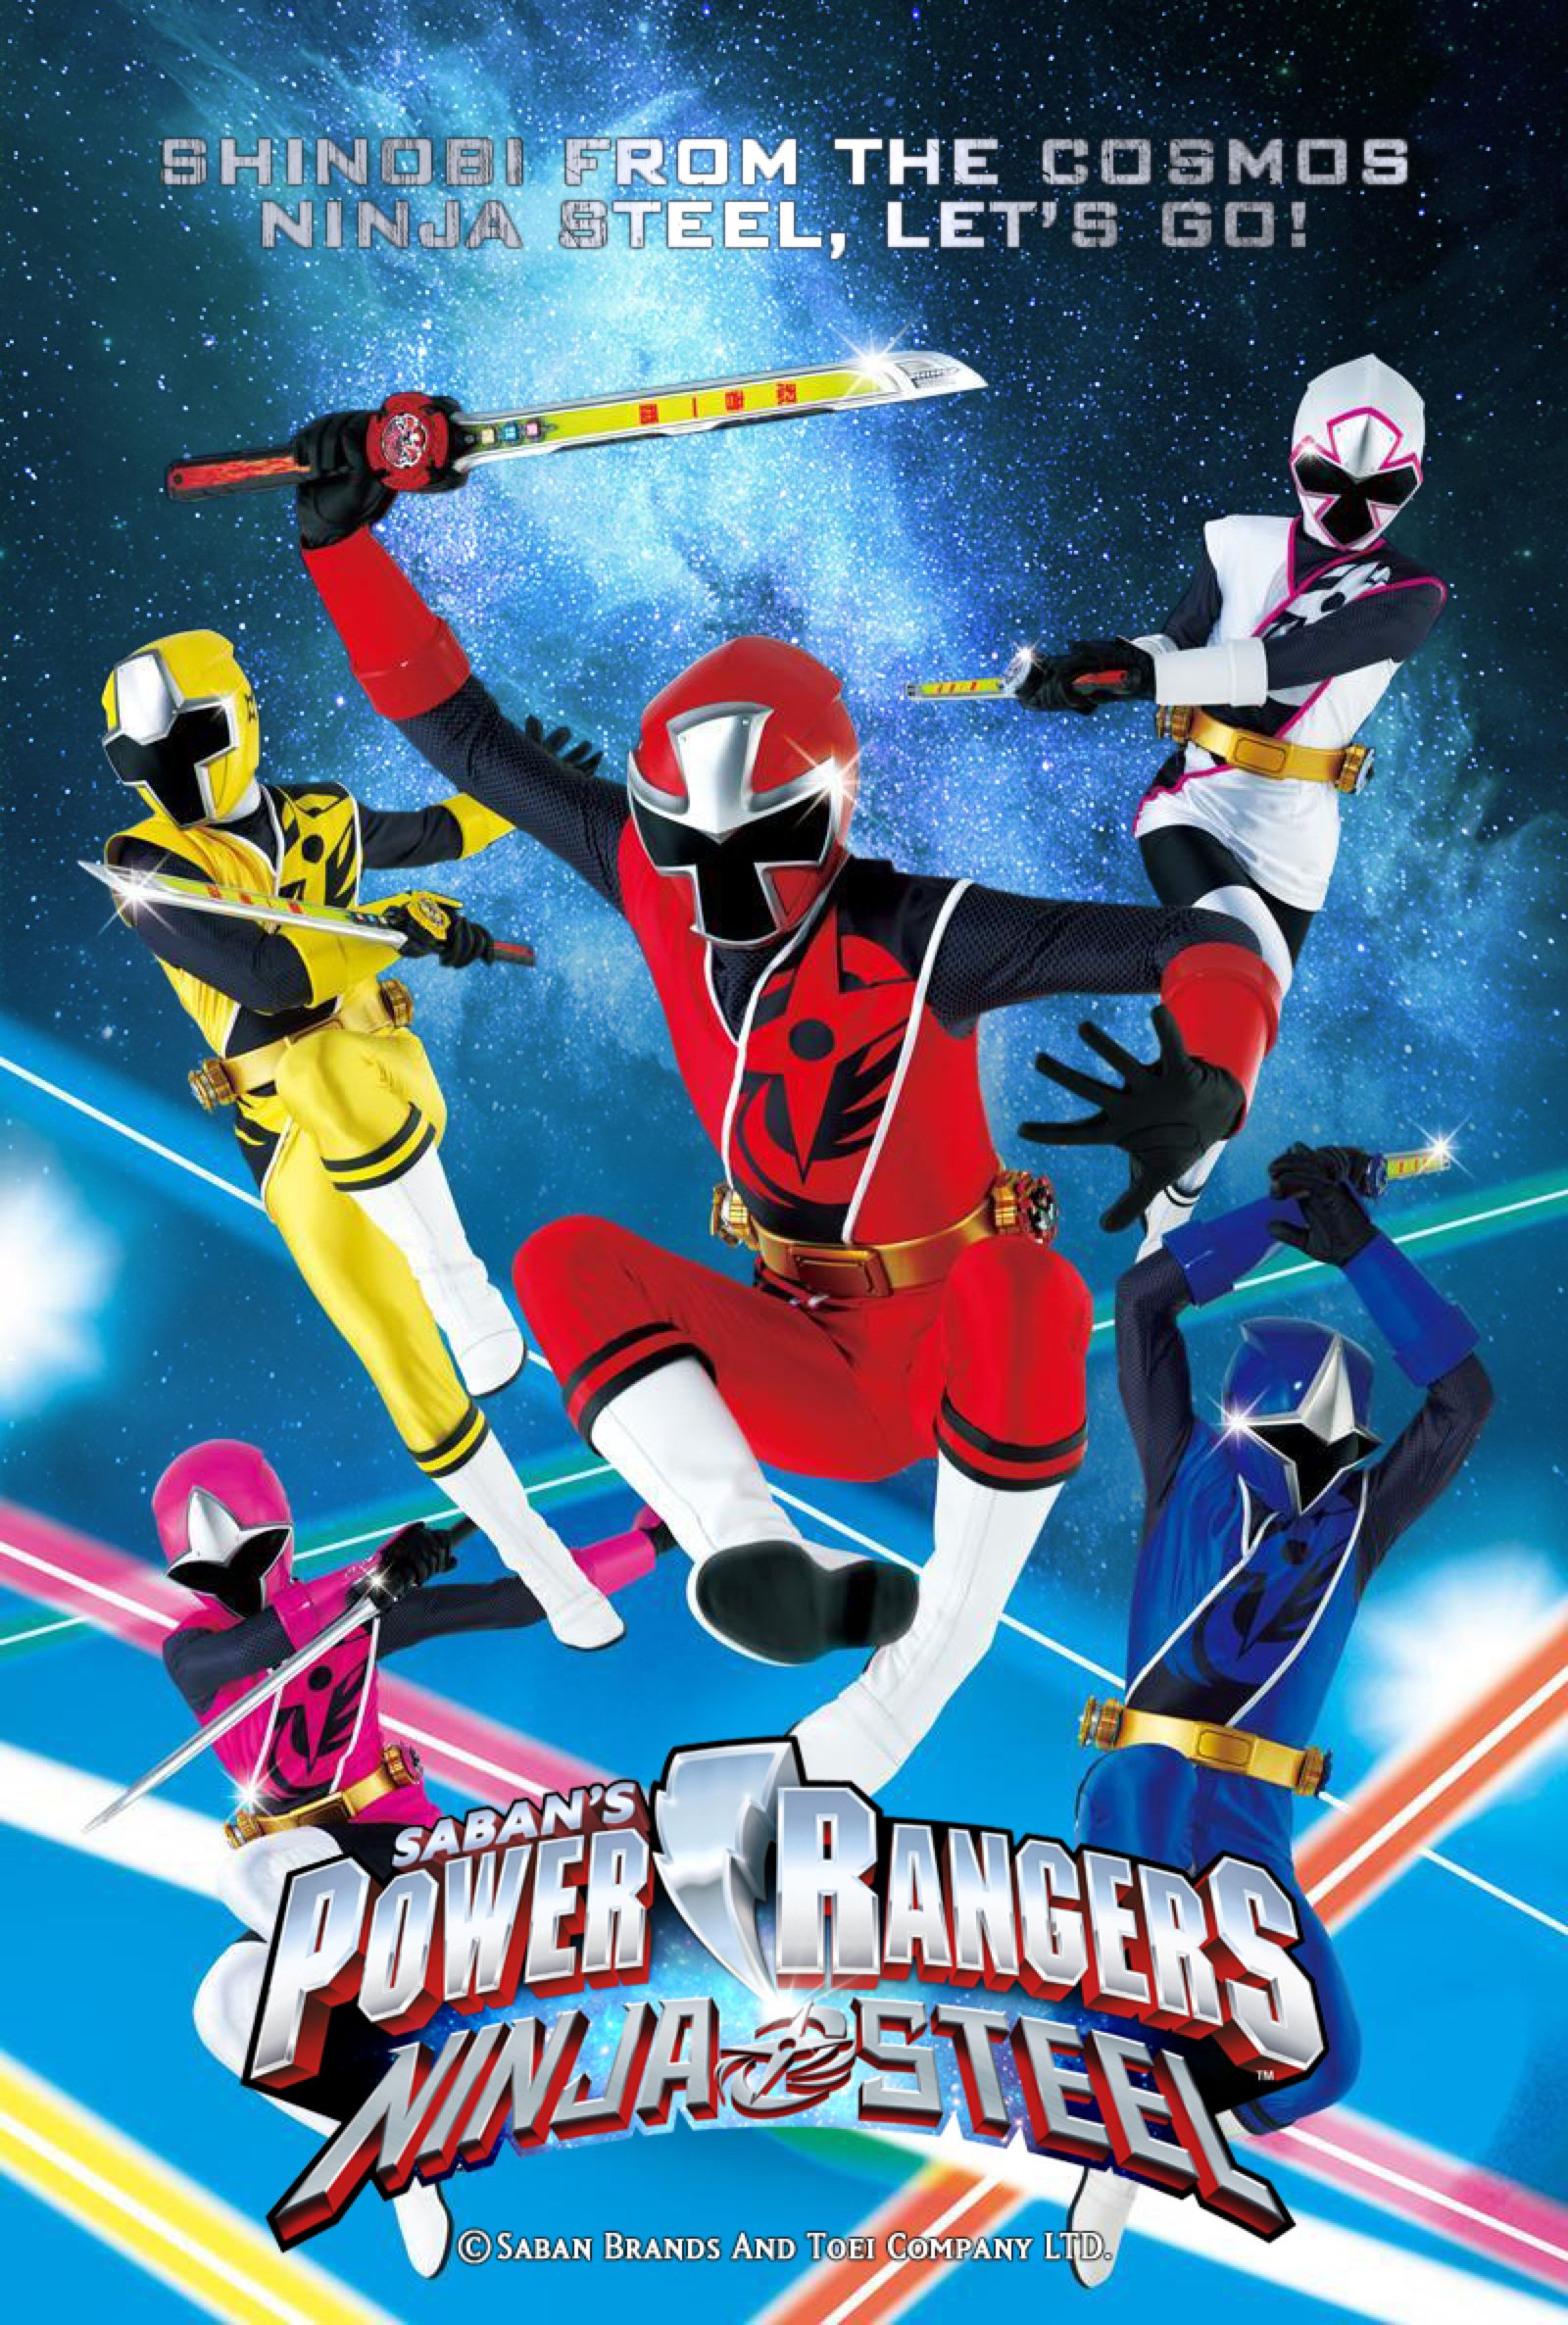 Ninja Steel Promo Poster Fanedit By Akirathefighter24 On